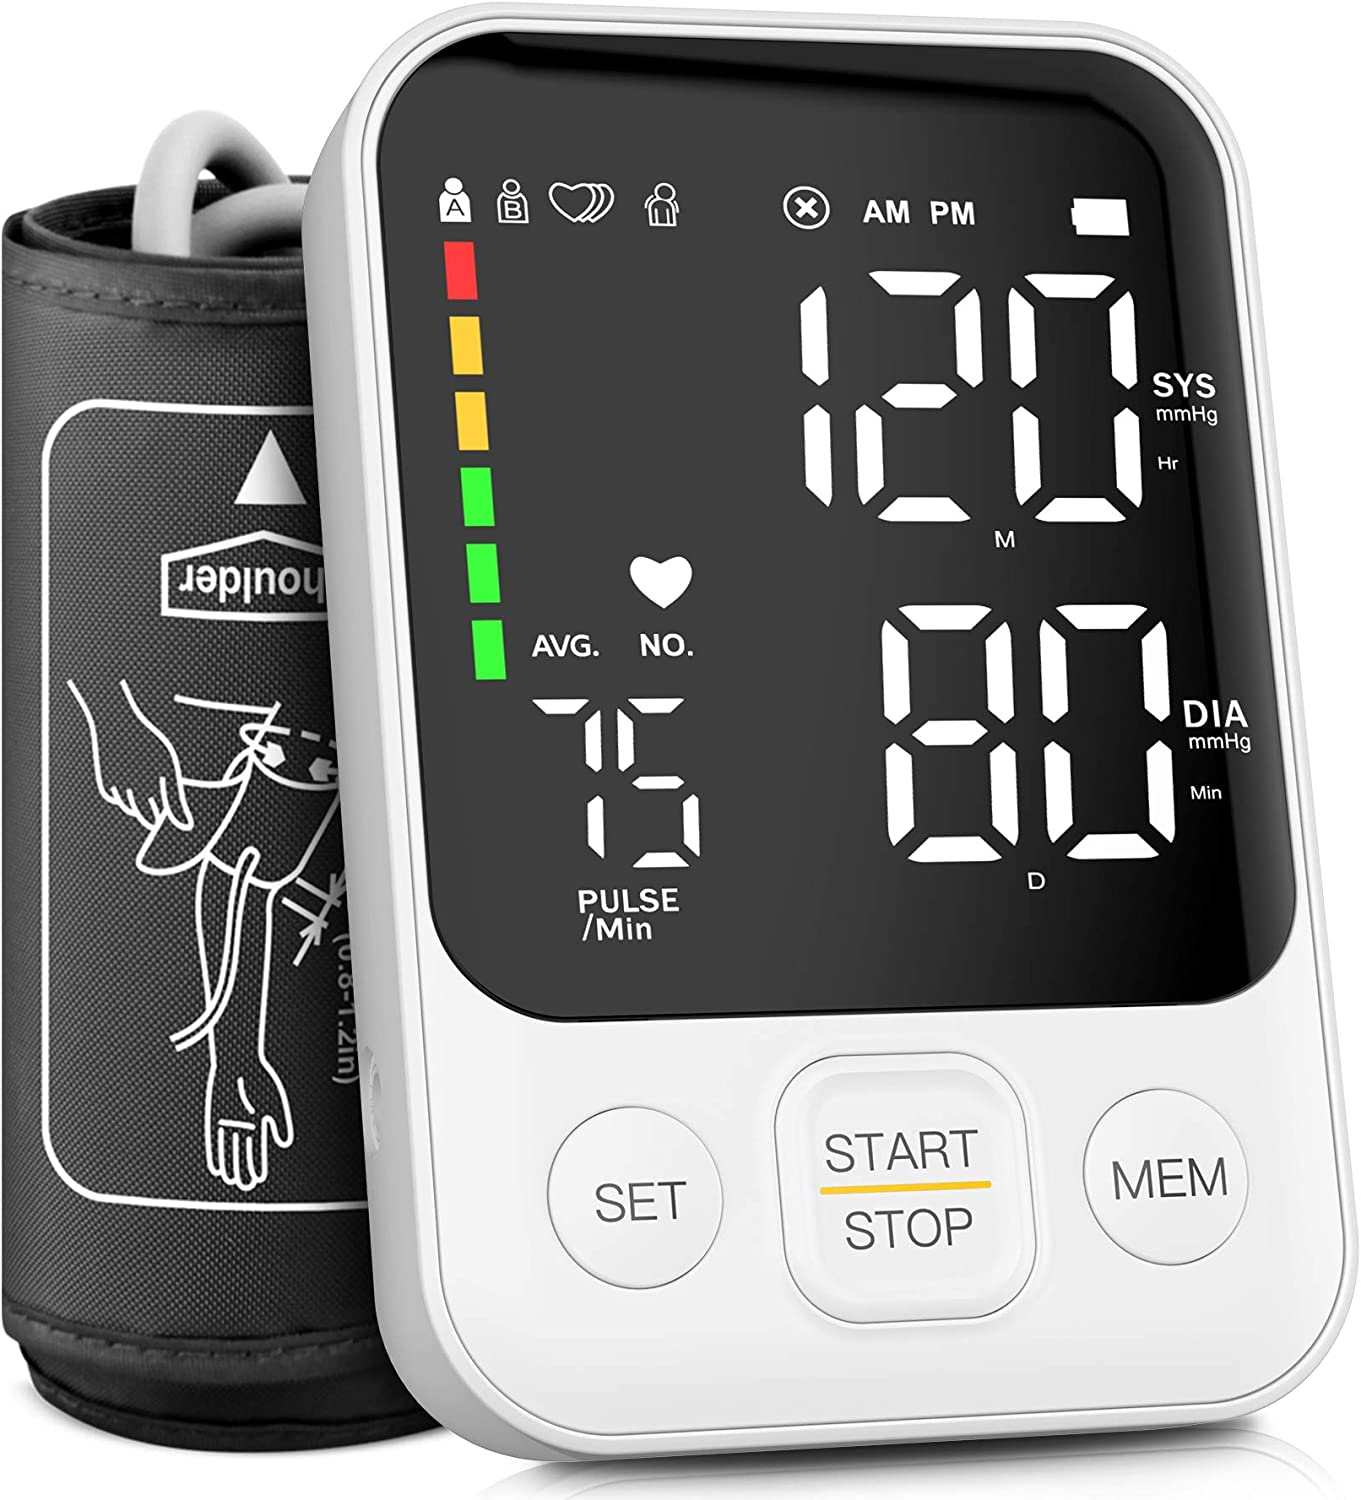 Blood Pressure Monitor Accurate Upper Arm Automatic Digital BP Machine with Adjustable Cuff, Large LED Display, Irregular Heart Checking for Home Use - 240 Sets Memory